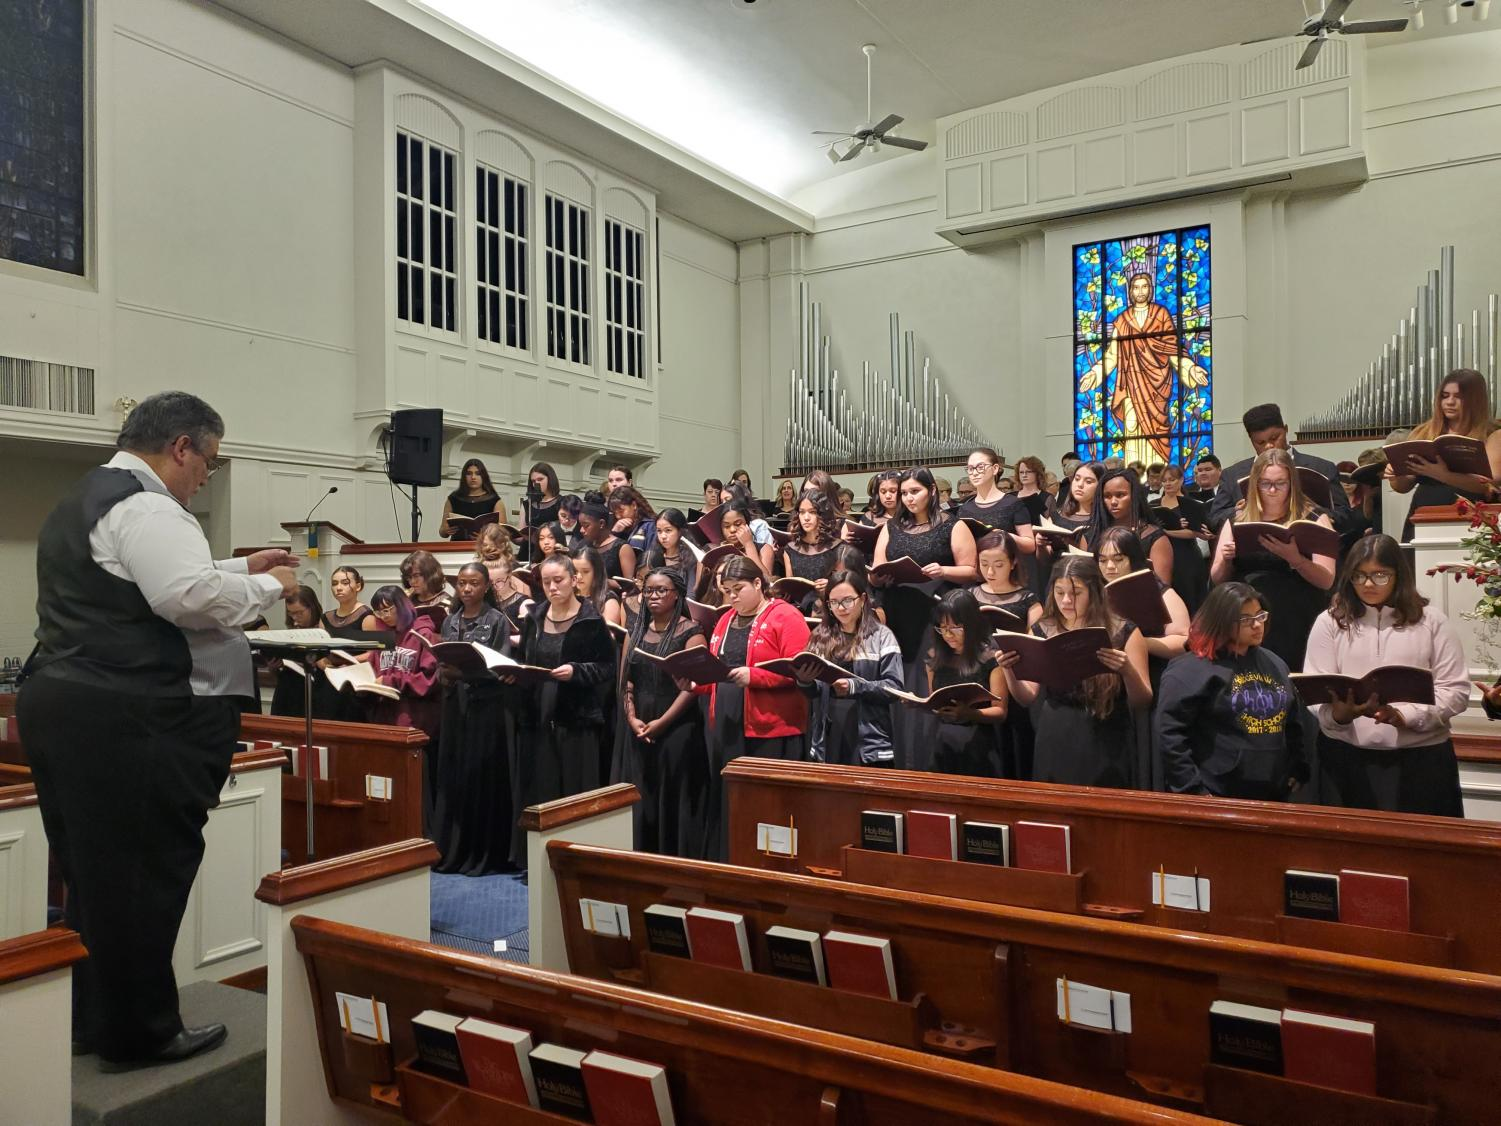 Ridgeview choir students gathering at a church to practice the song they will be performing with director of the Master Chorale, Robert Provencio.